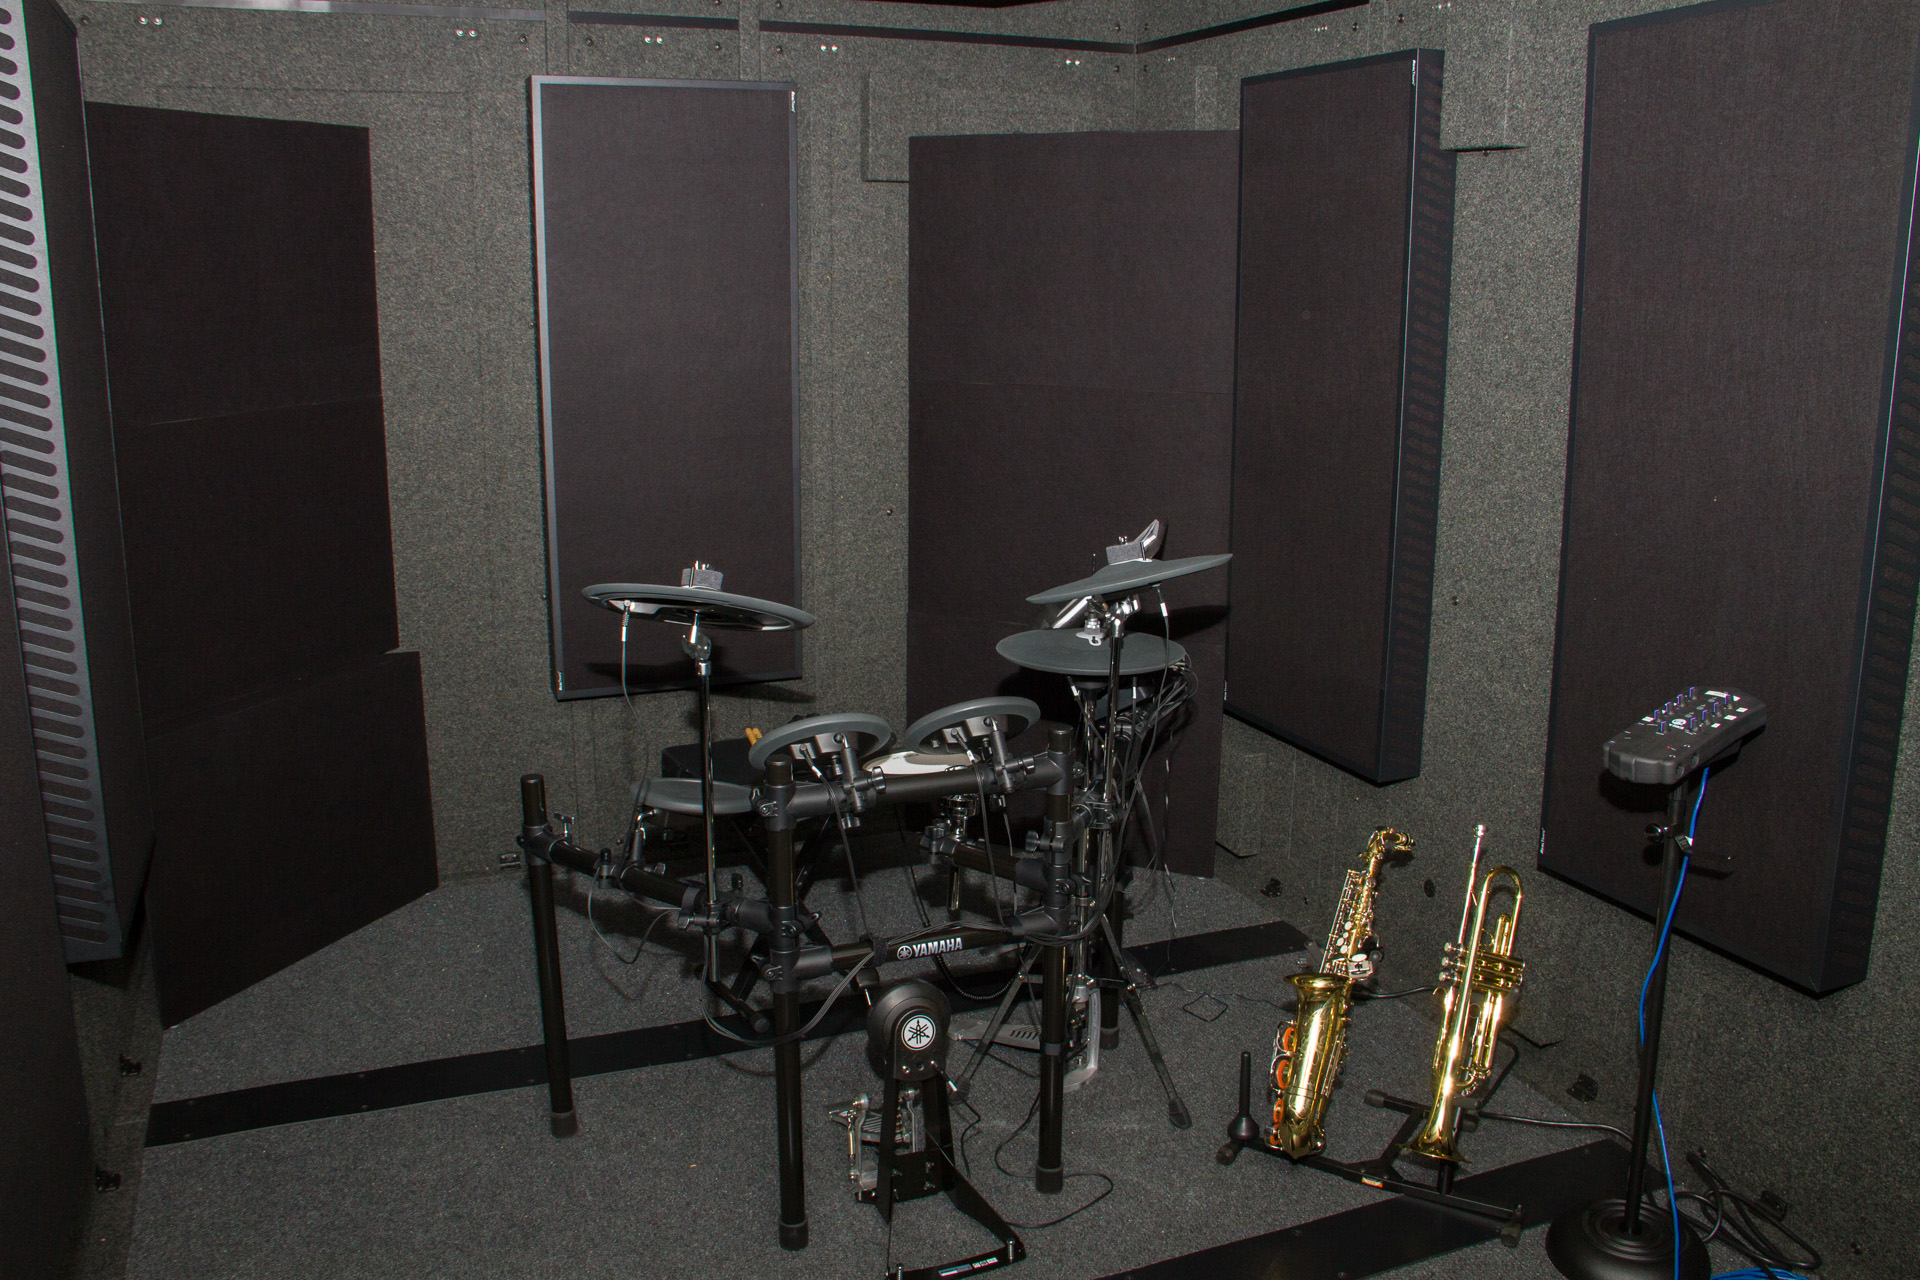 garden street academy instrument booth yamaha electronic drums